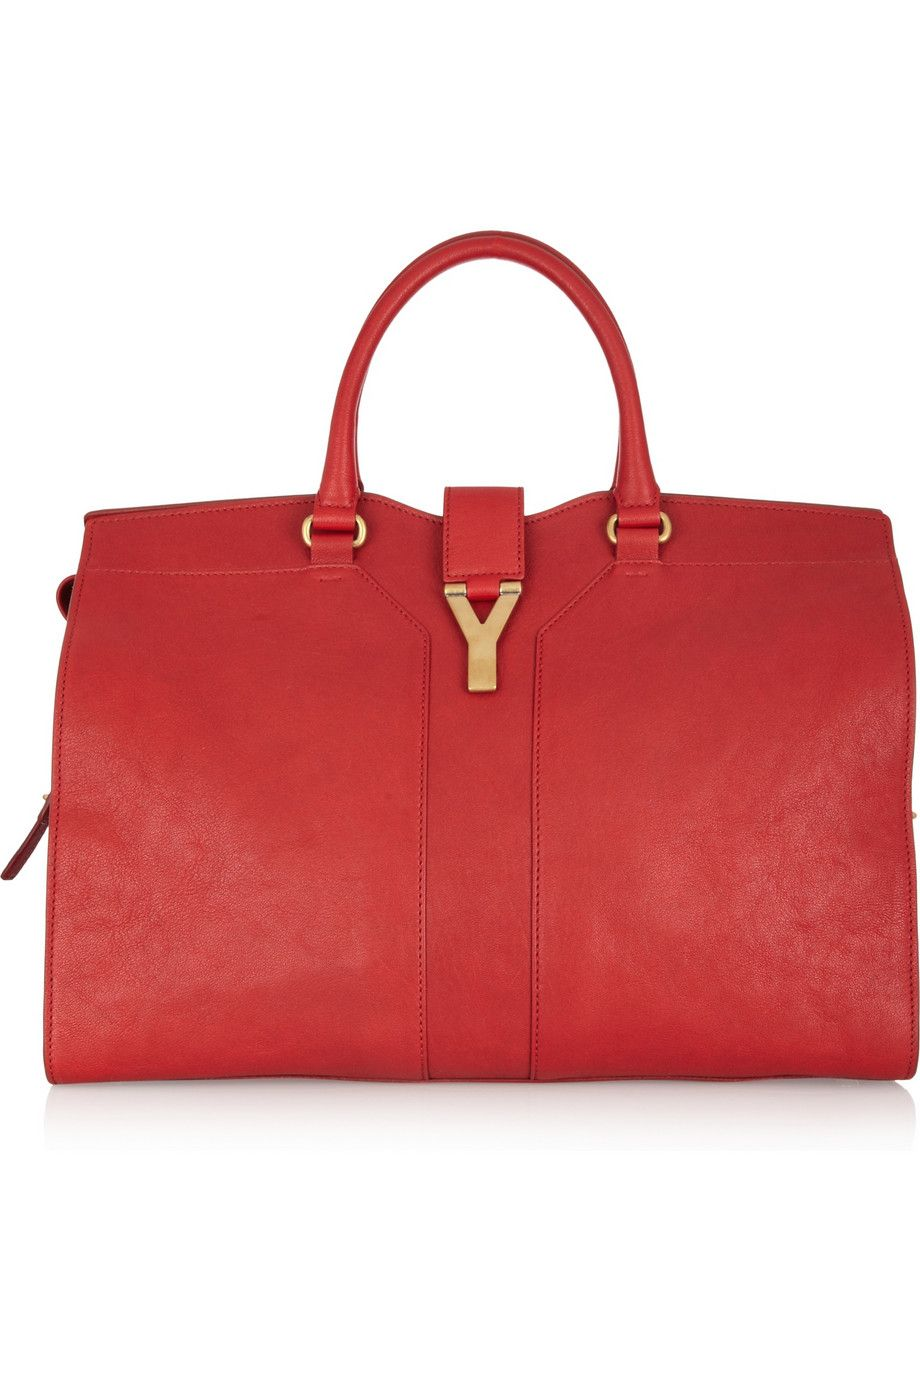 dc51e5ac32 YVES SAINT LAURENT Cabas Chyc Large leather tote £1